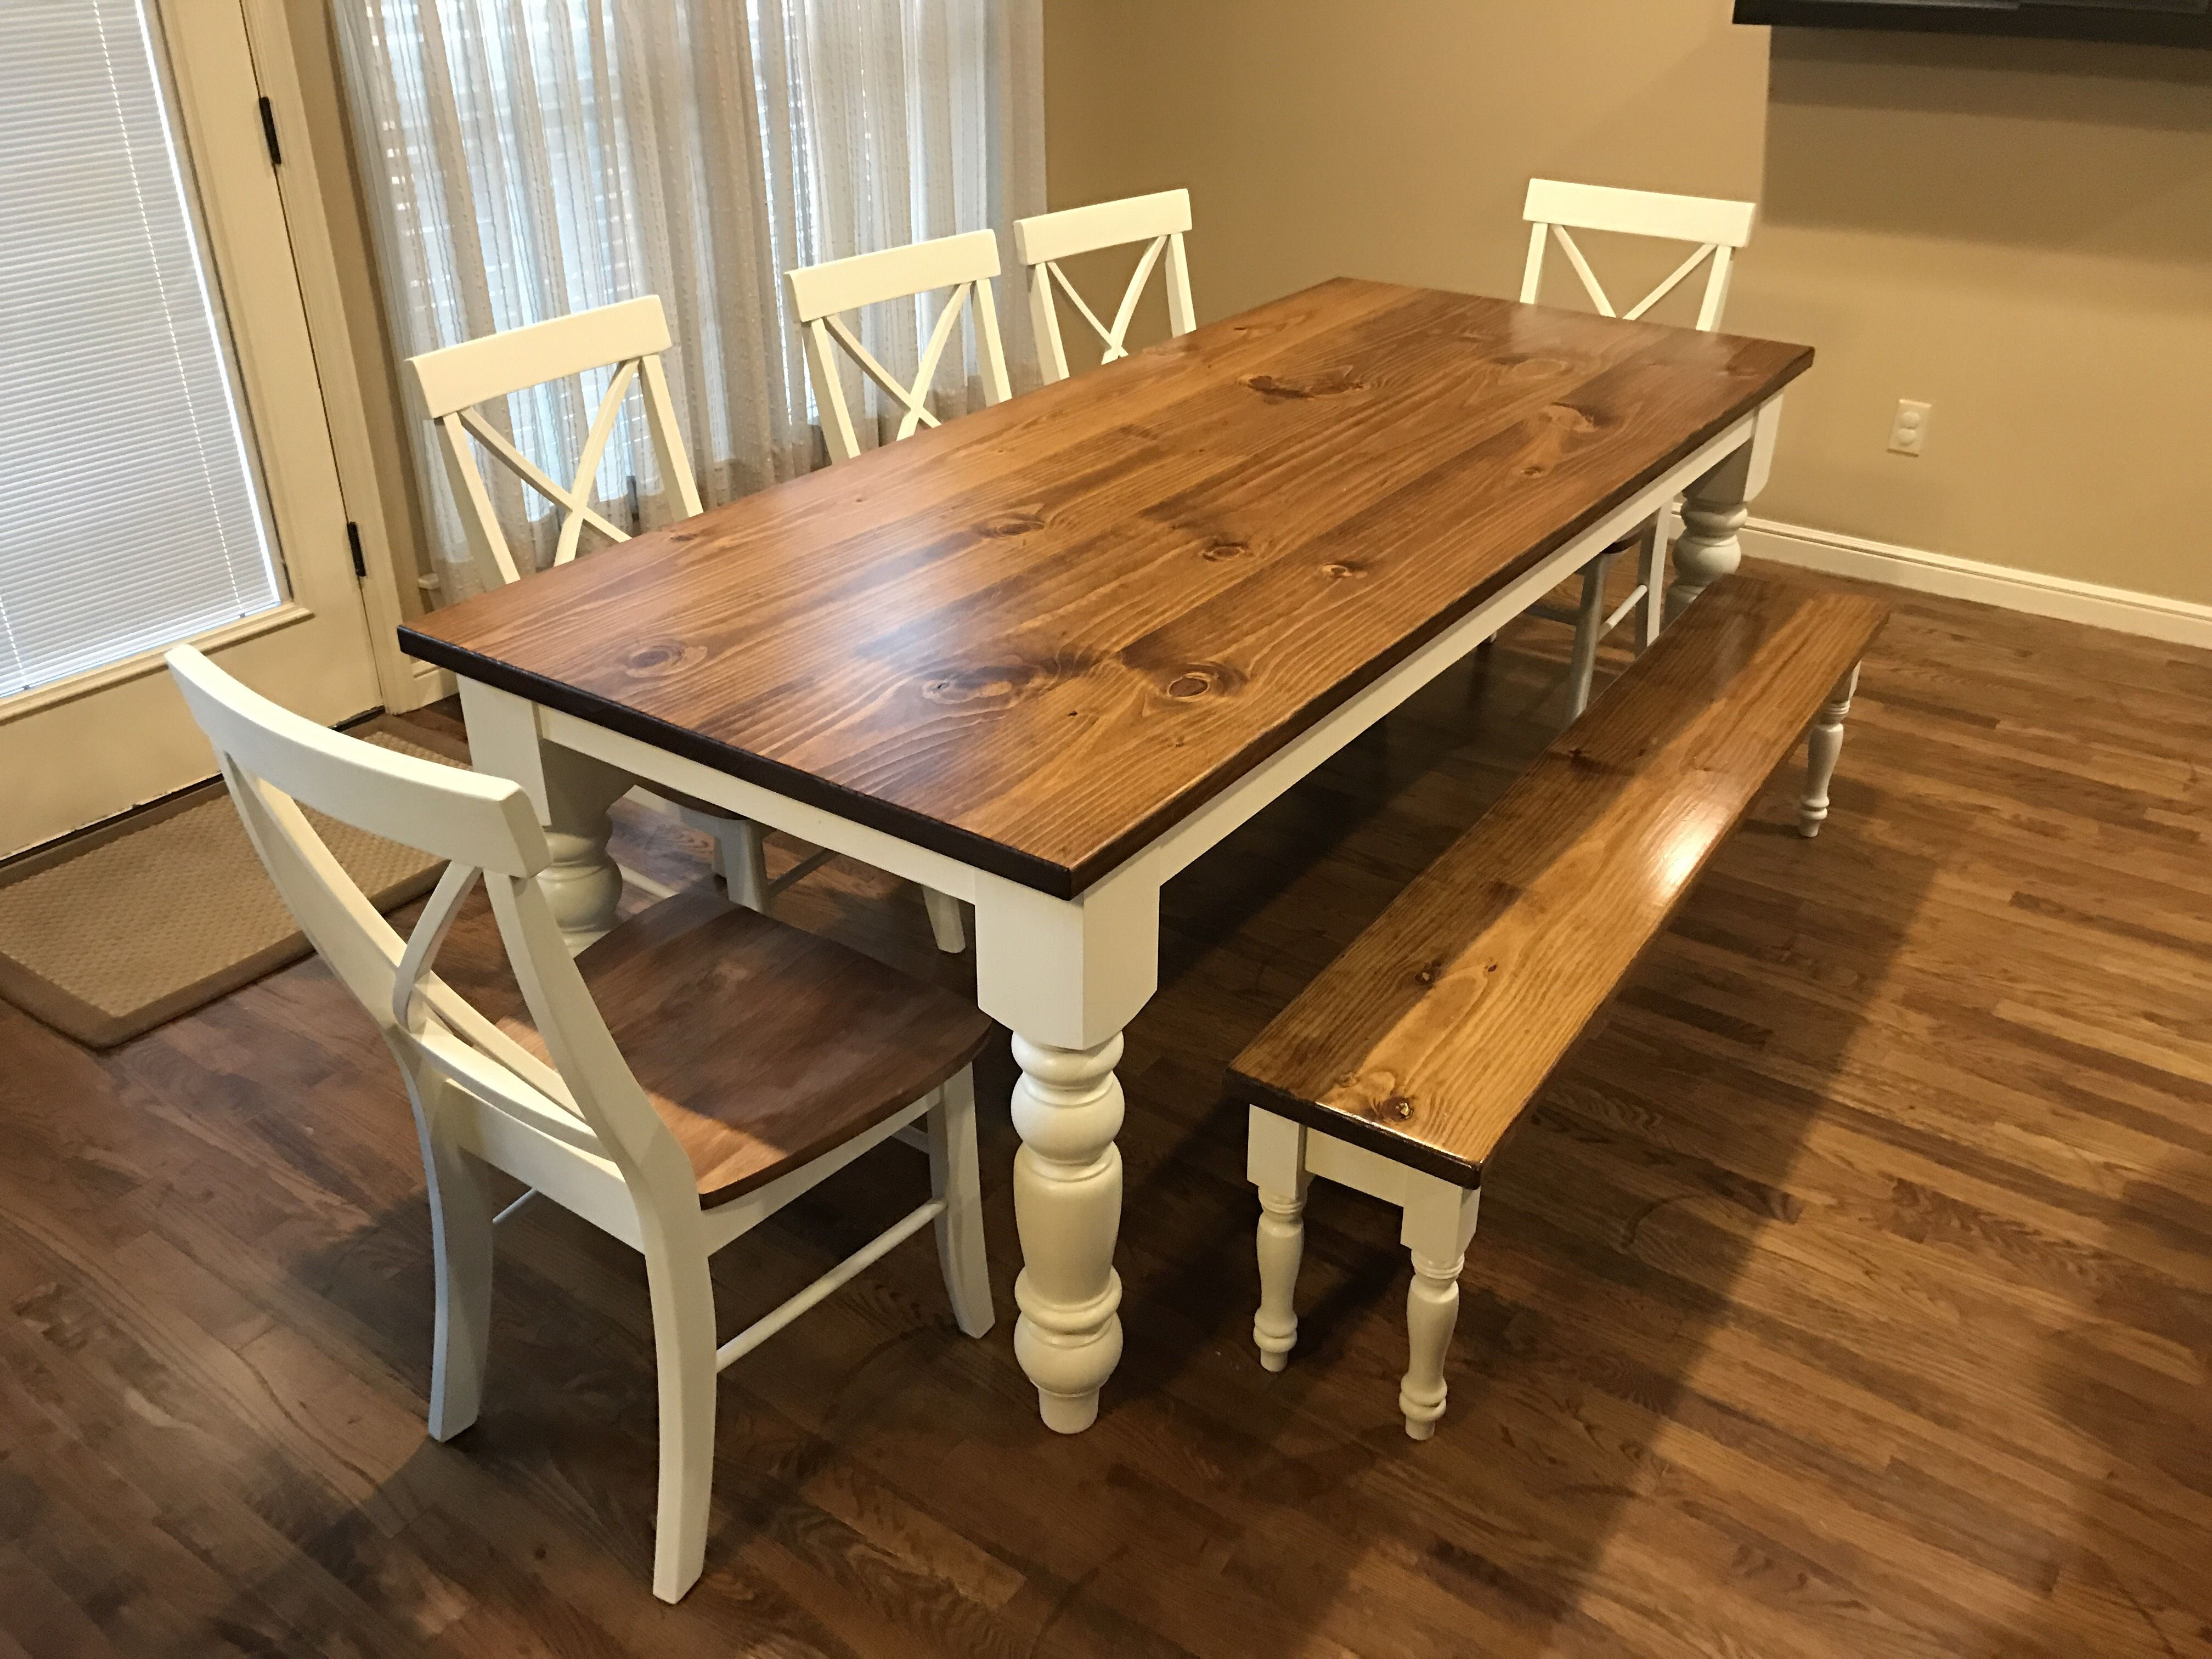 Baluster Turned Leg Table My House Decor Plans